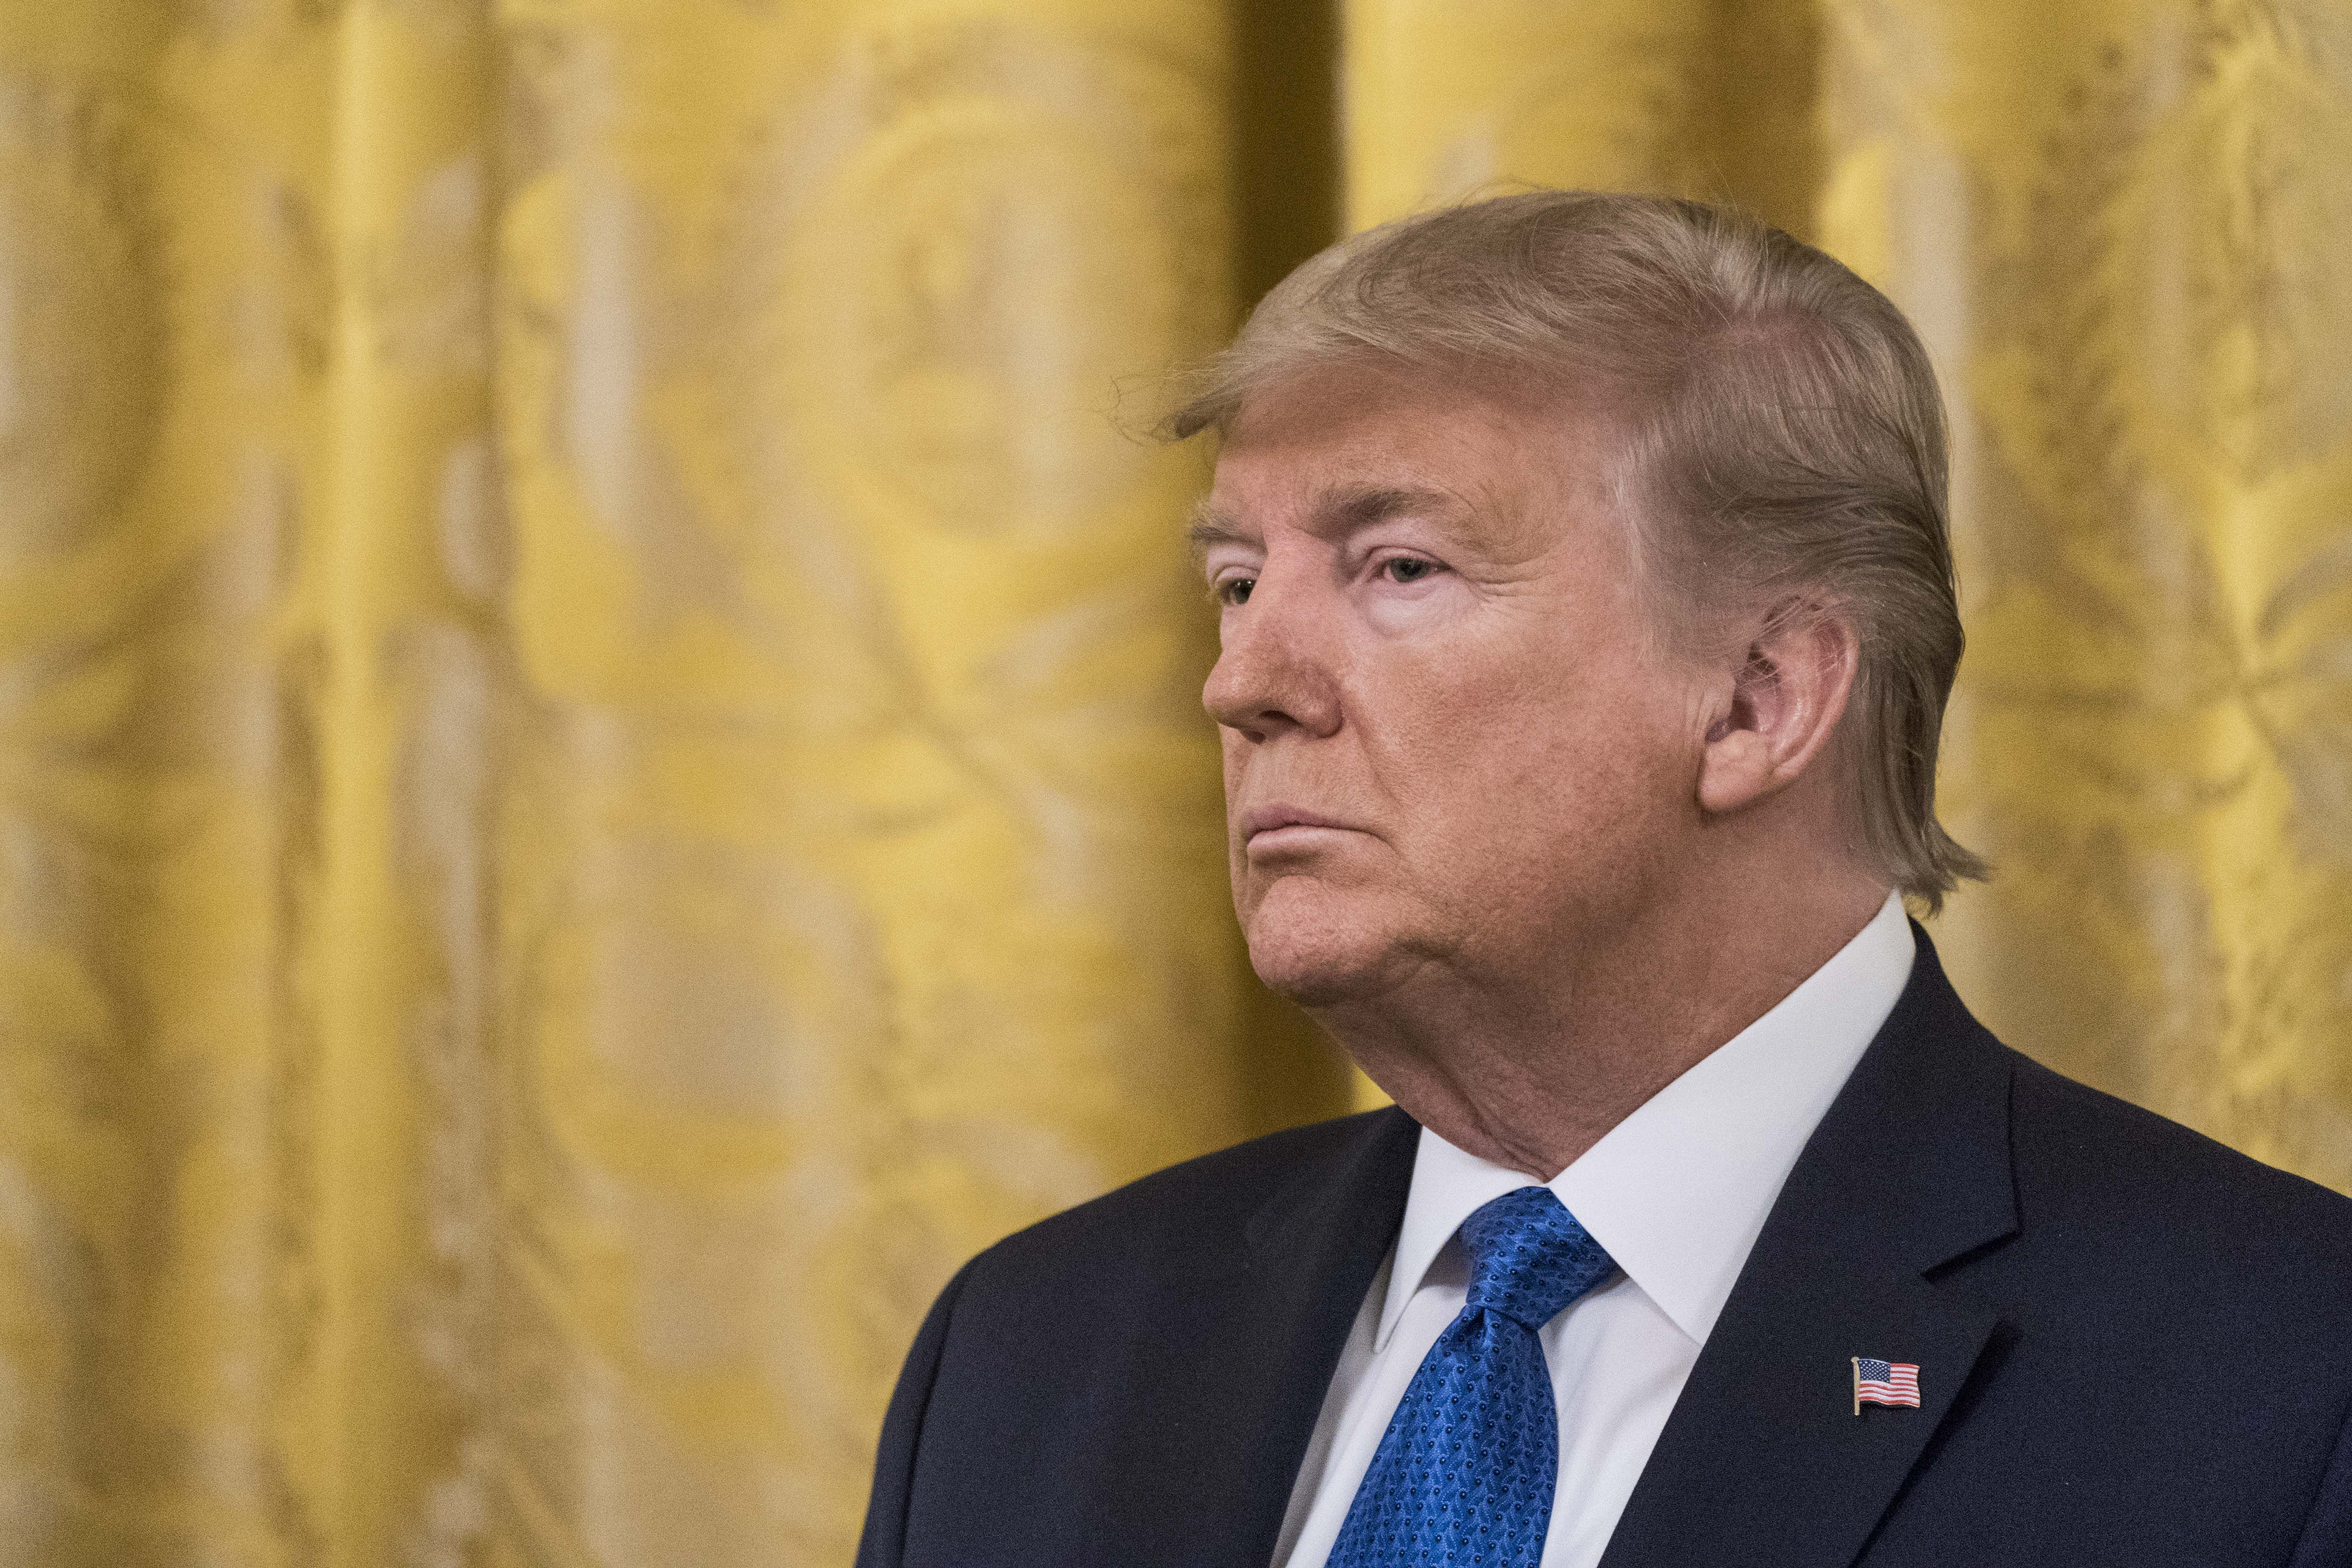 Poll: Majority believe Trump abused power and obstructed Congress - Axios